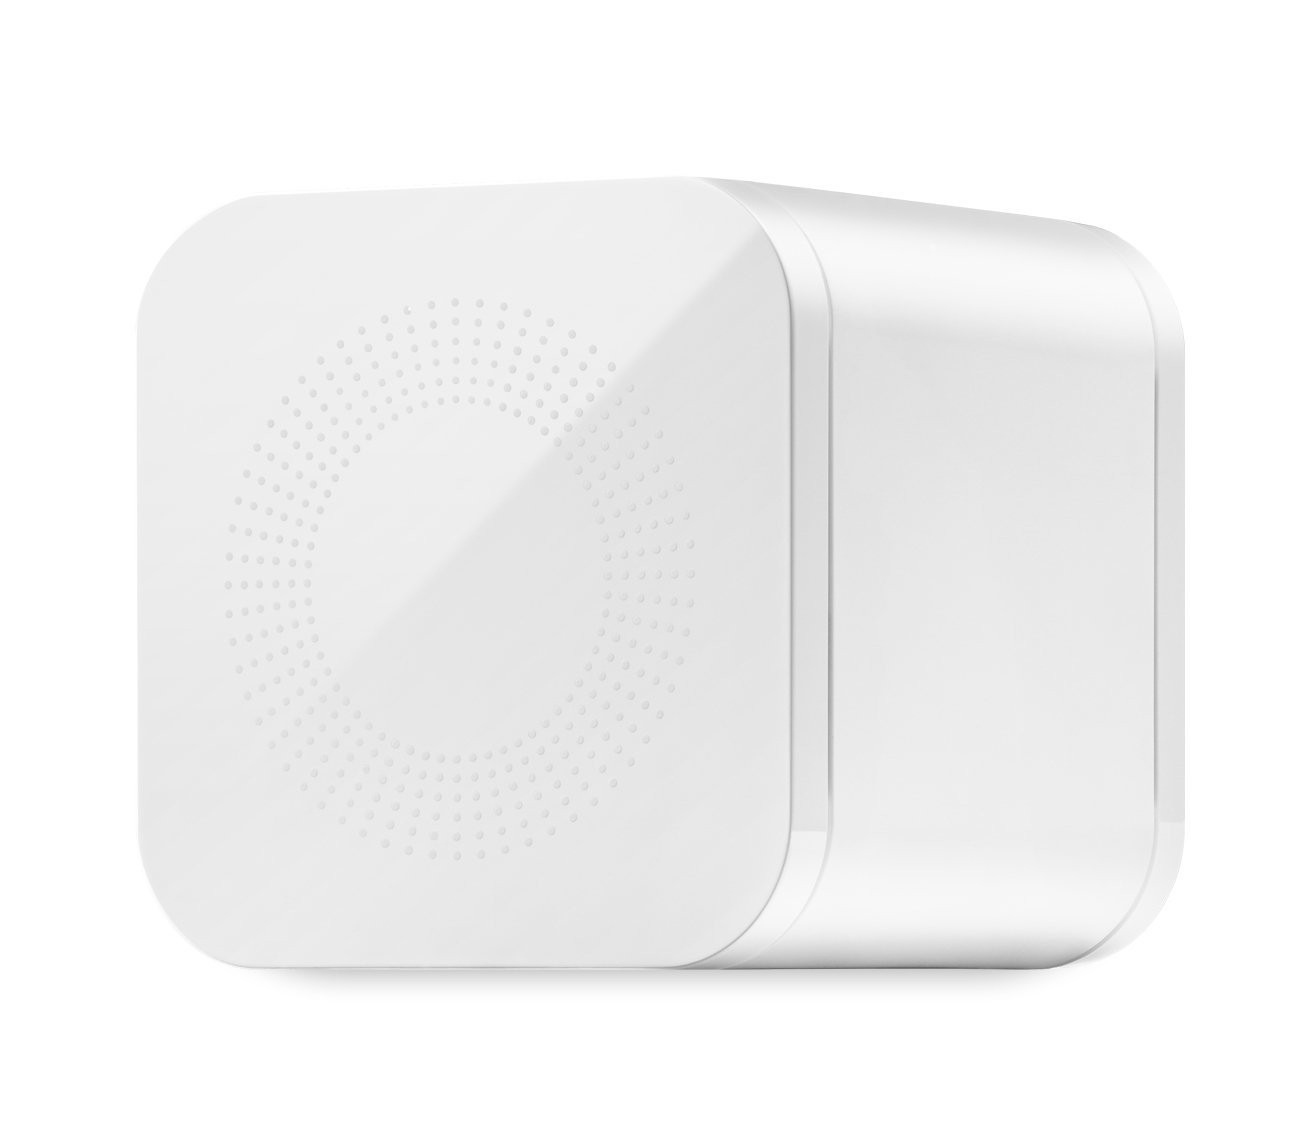 Circle Wi-Fi Parental Control & Internet Filtering